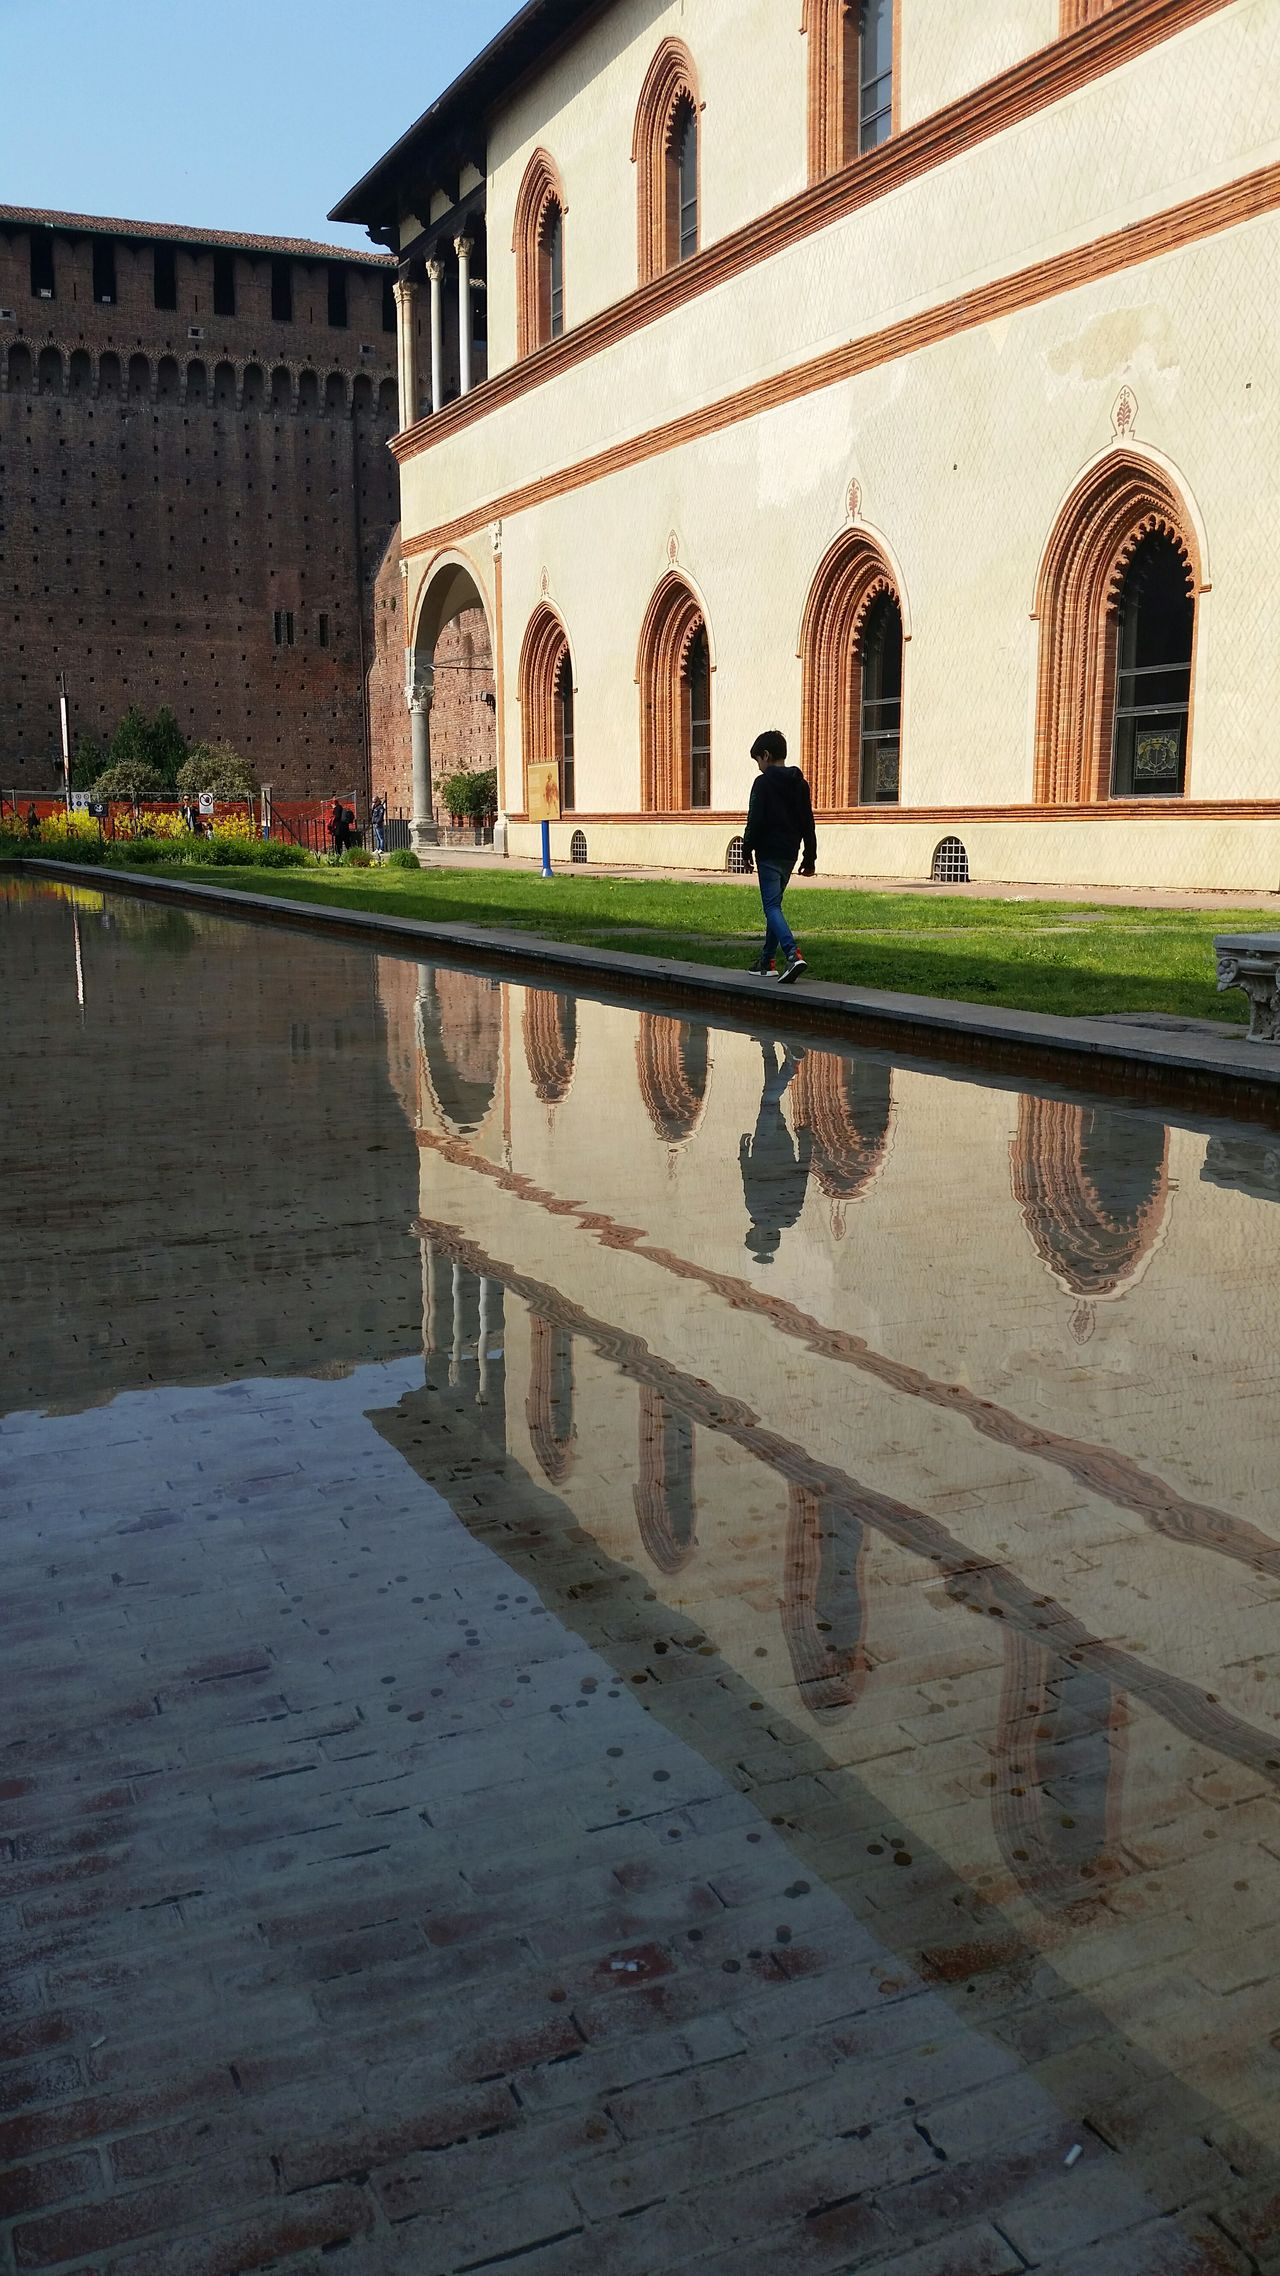 Boy reflected in a shallow pool inside Castello Sforzesco Architecture Reflection Travel Destinations Outdoors Water Day One Person Milan Milano Milan Italy Castle Castle Grounds Alone Boy Travel Photography Built Structure